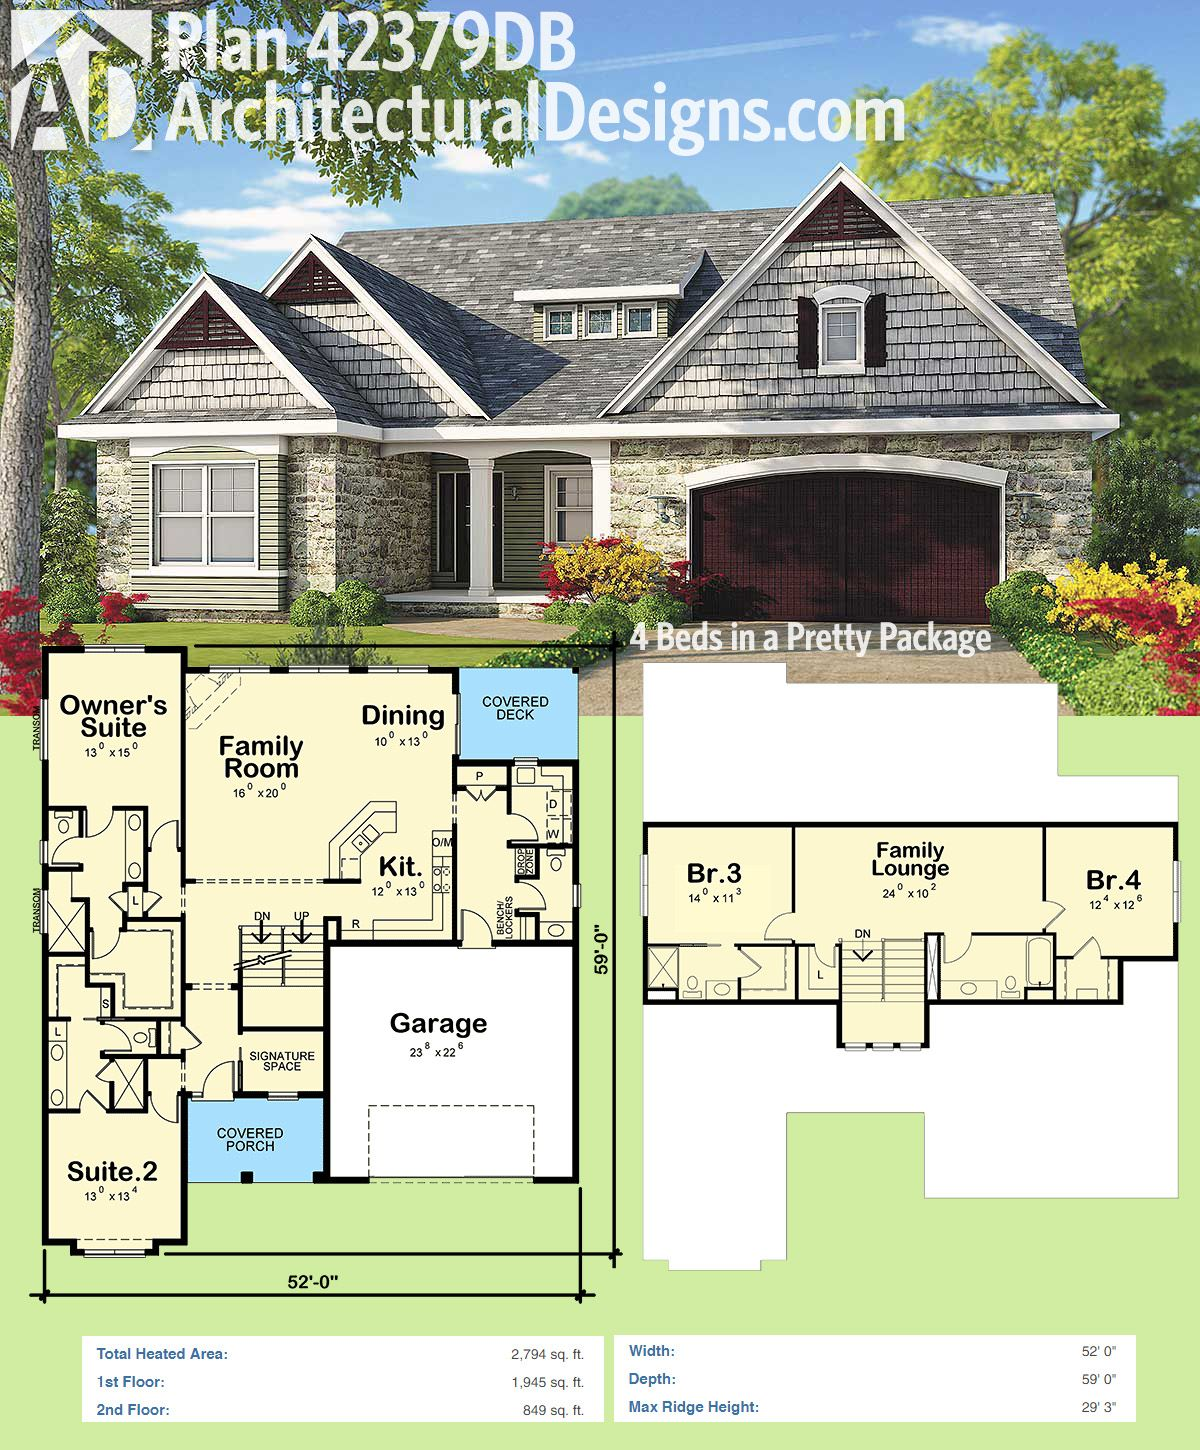 Plan 42379db 4 beds in a pretty package architectural for New houses plans